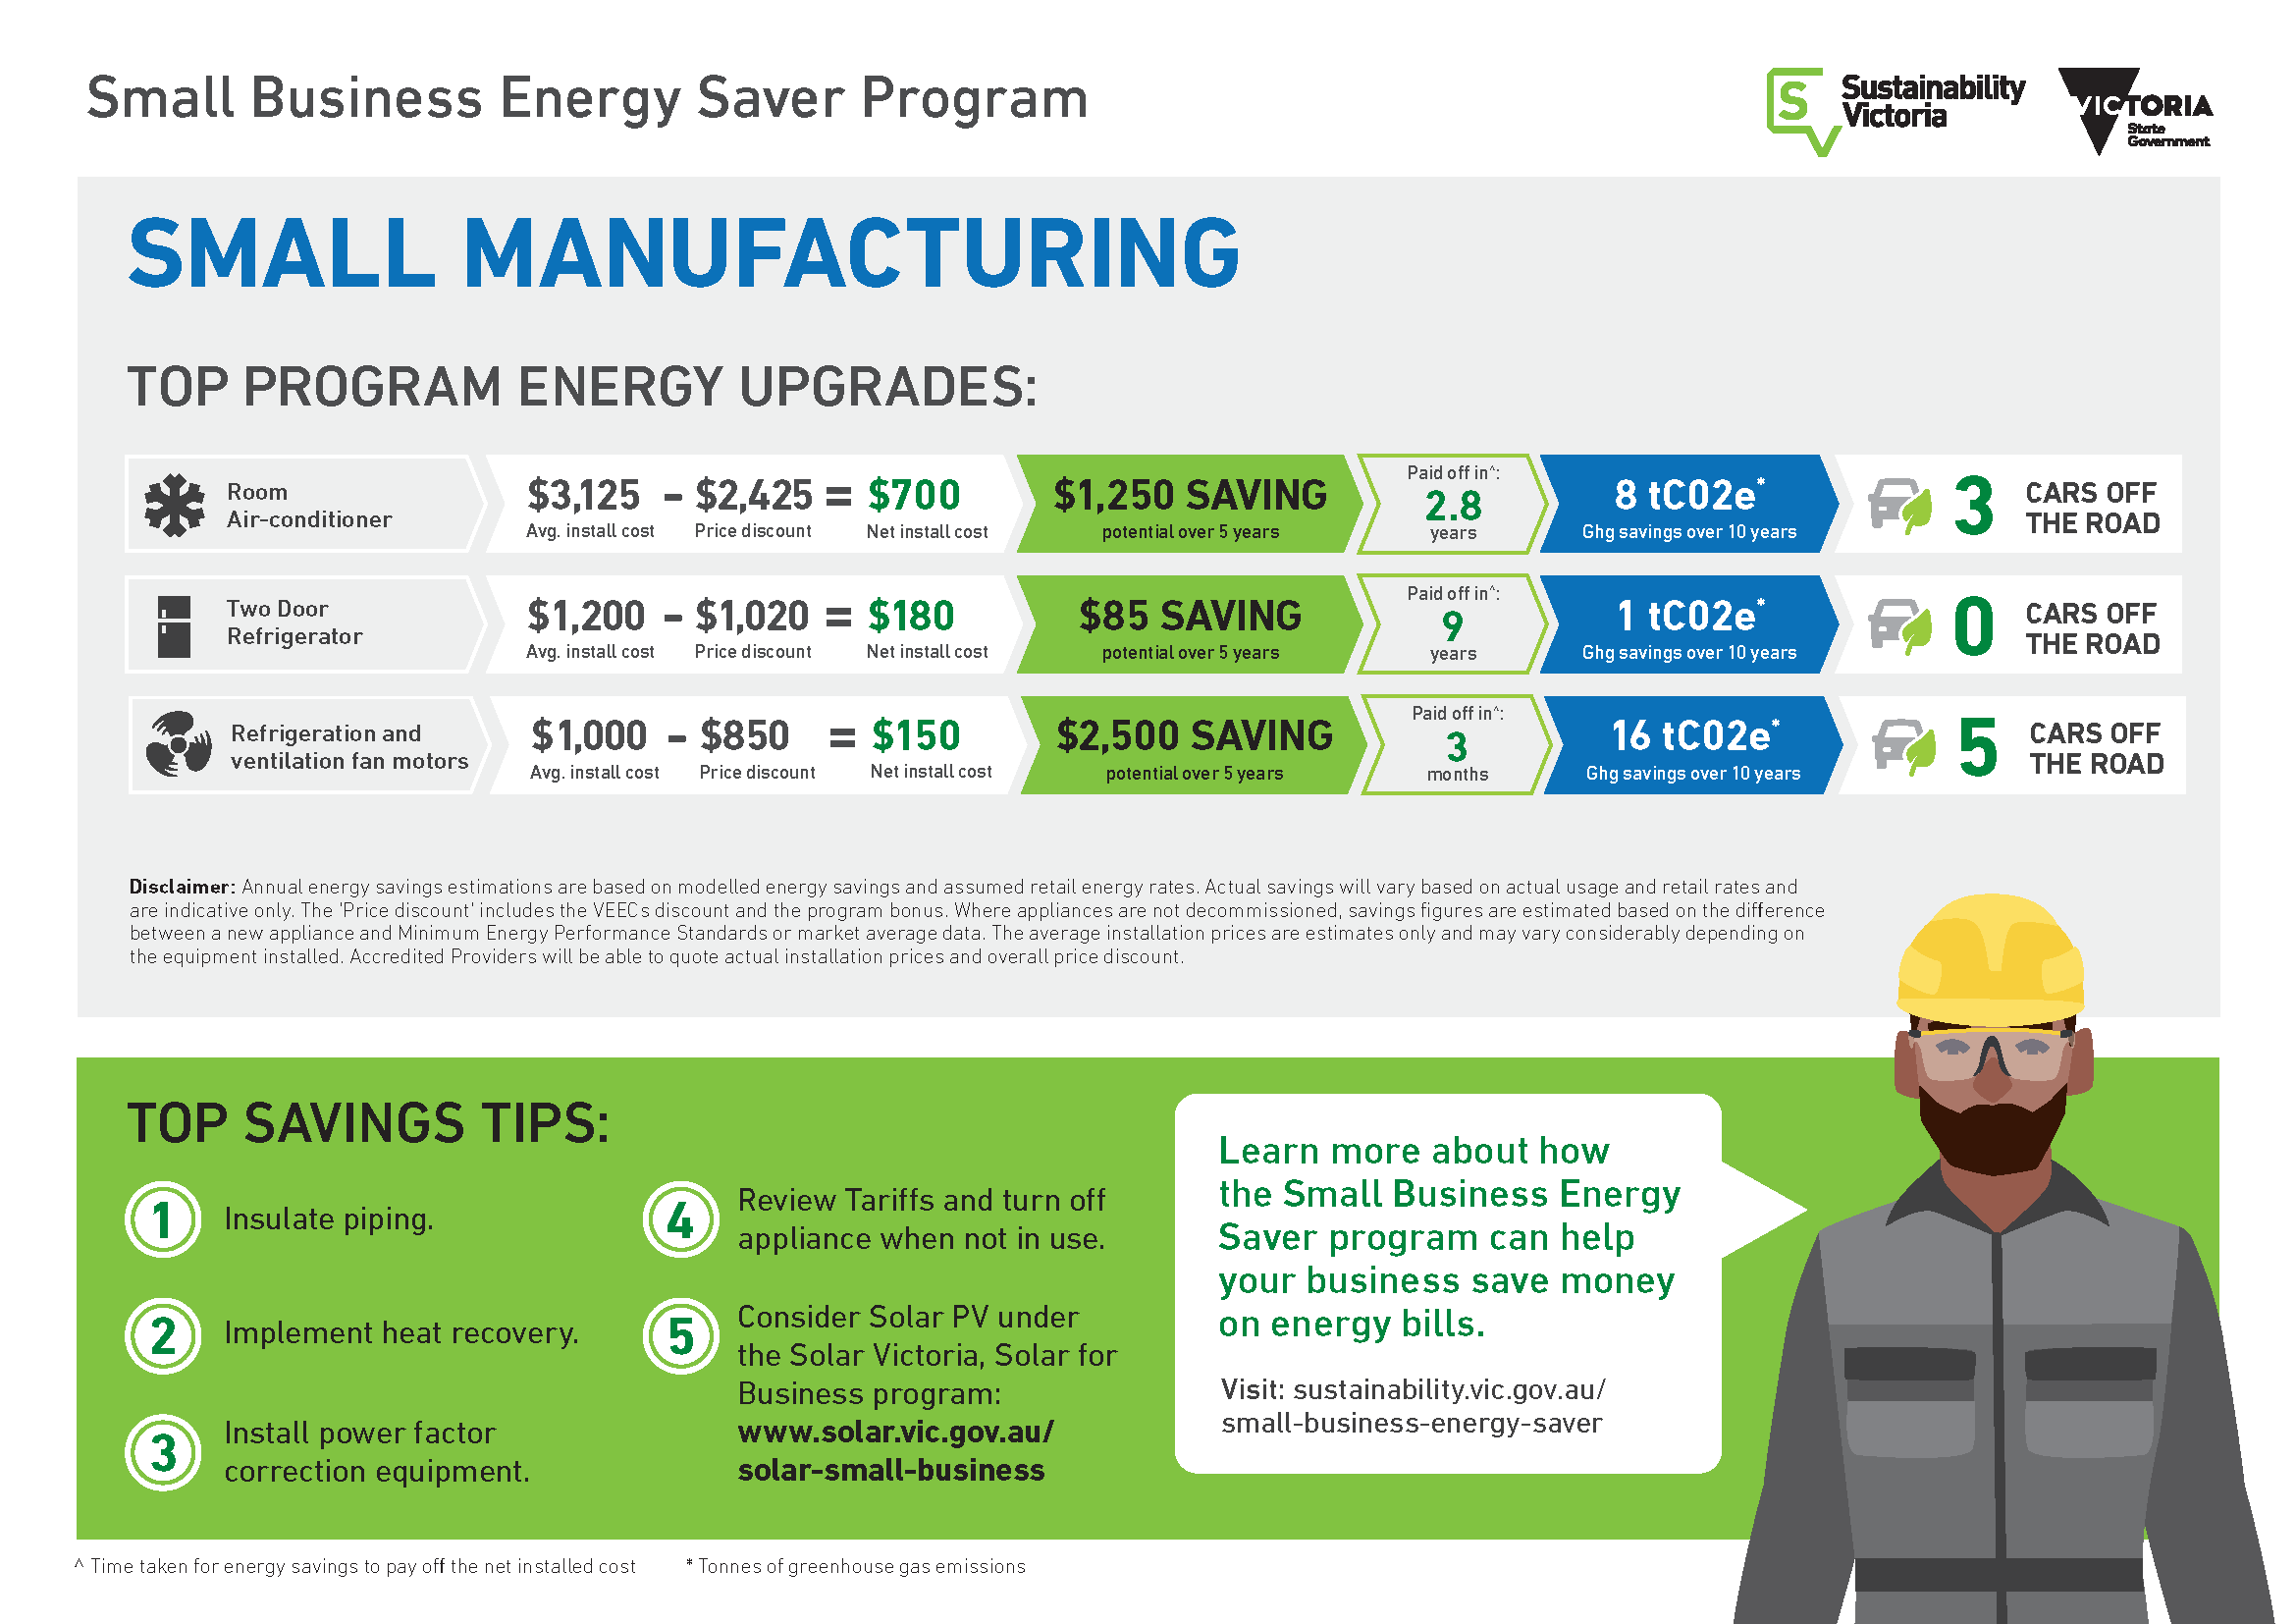 Business Energy Saver Program - Small Manufacturing